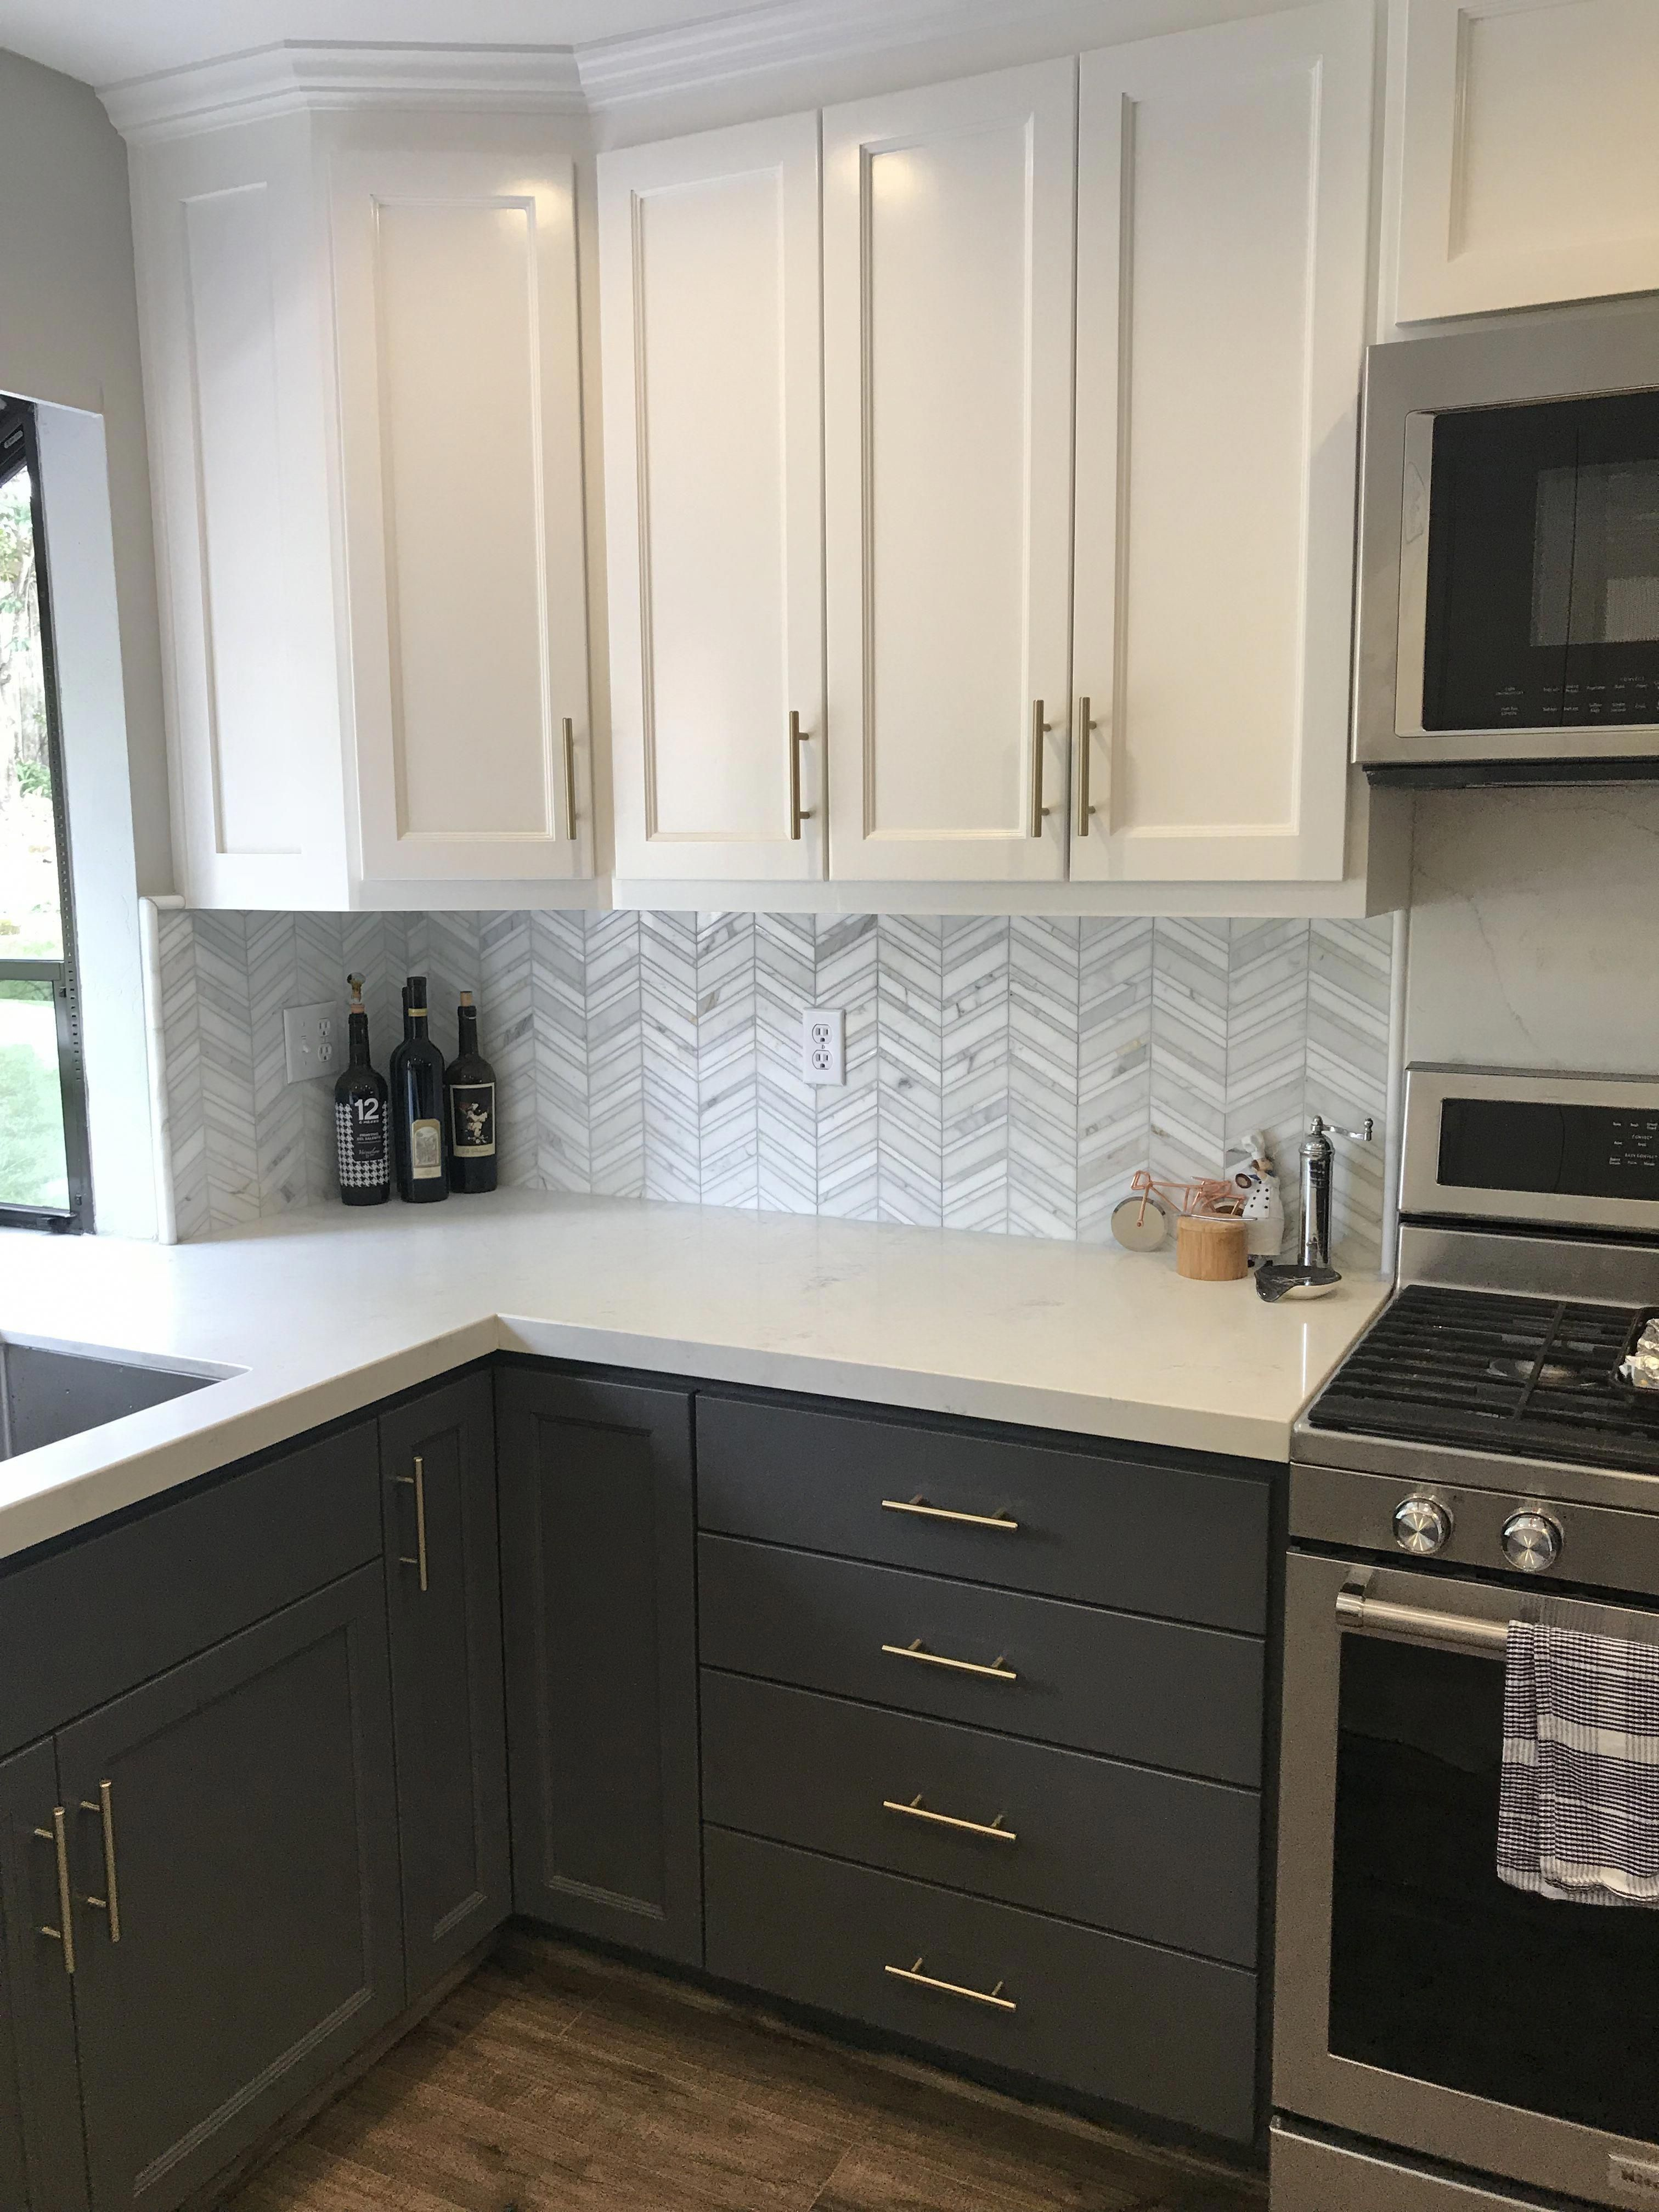 Spectacular Kitchen Cabinet Shades There Are Various Shades Of White To Pick F In 2020 Kitchen Remodel Small Painted Kitchen Cabinets Colors New Kitchen Cabinets